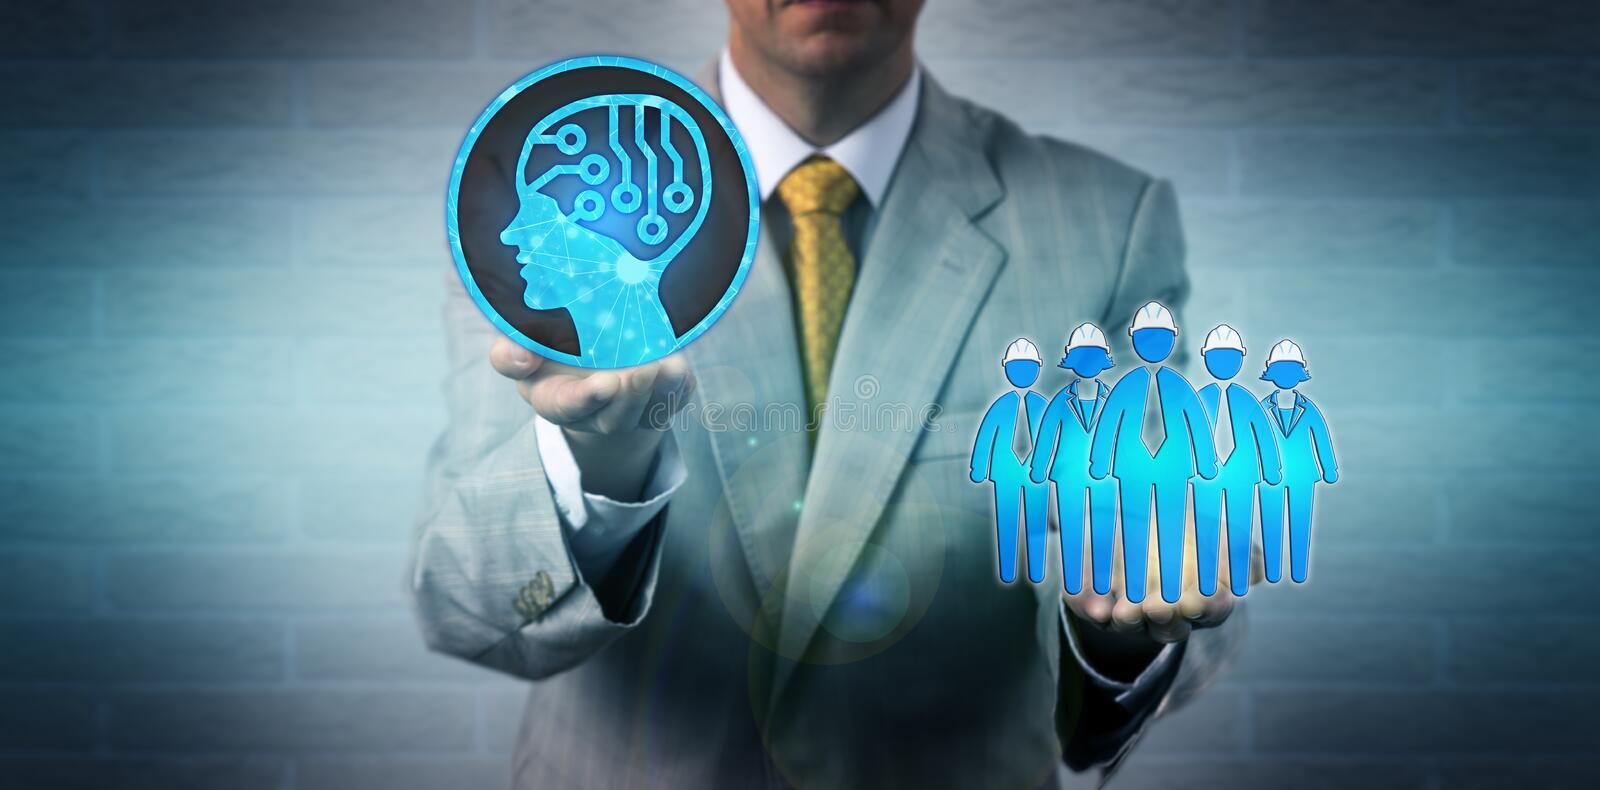 Manager Raising AI Above Blue Collar Worker Team royalty free stock images